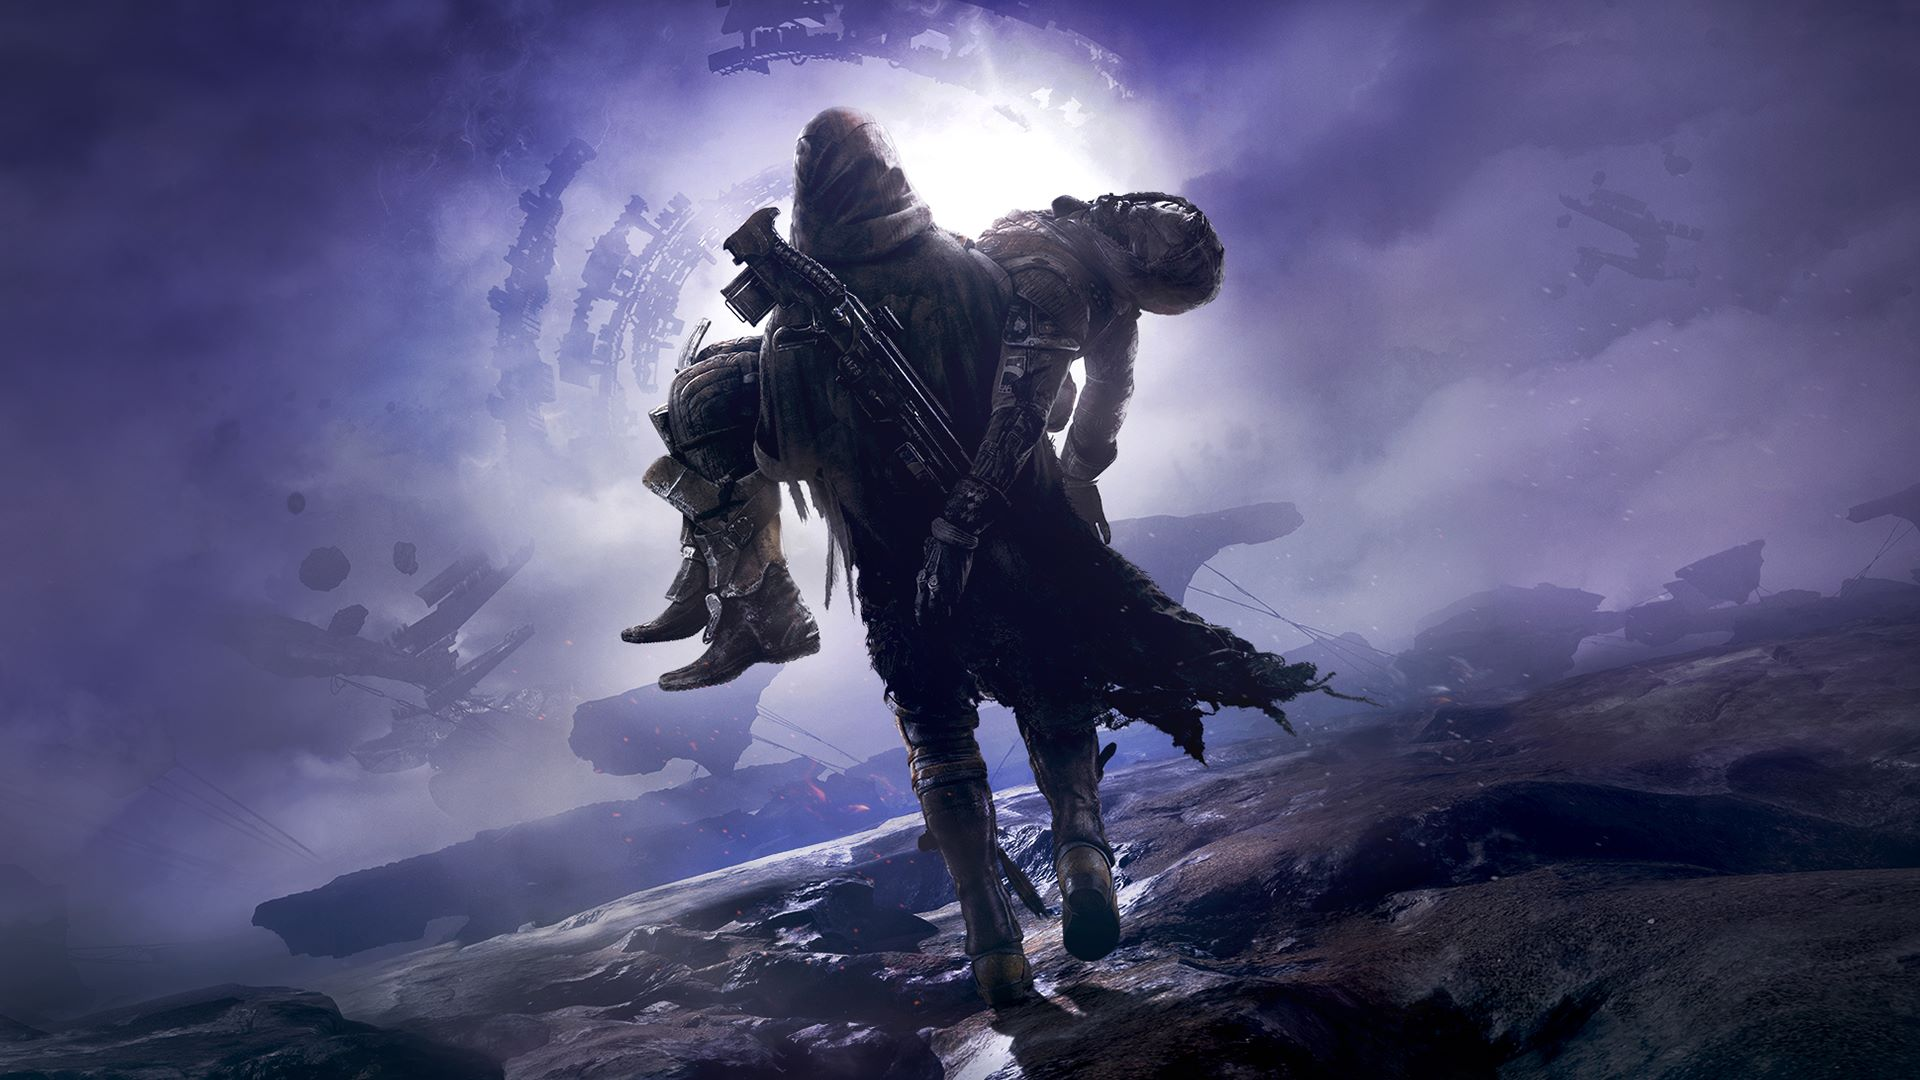 Yep, Destiny 2 is getting a big Game of the Year-type edition that includes this fall's Forsaken expansion screenshot